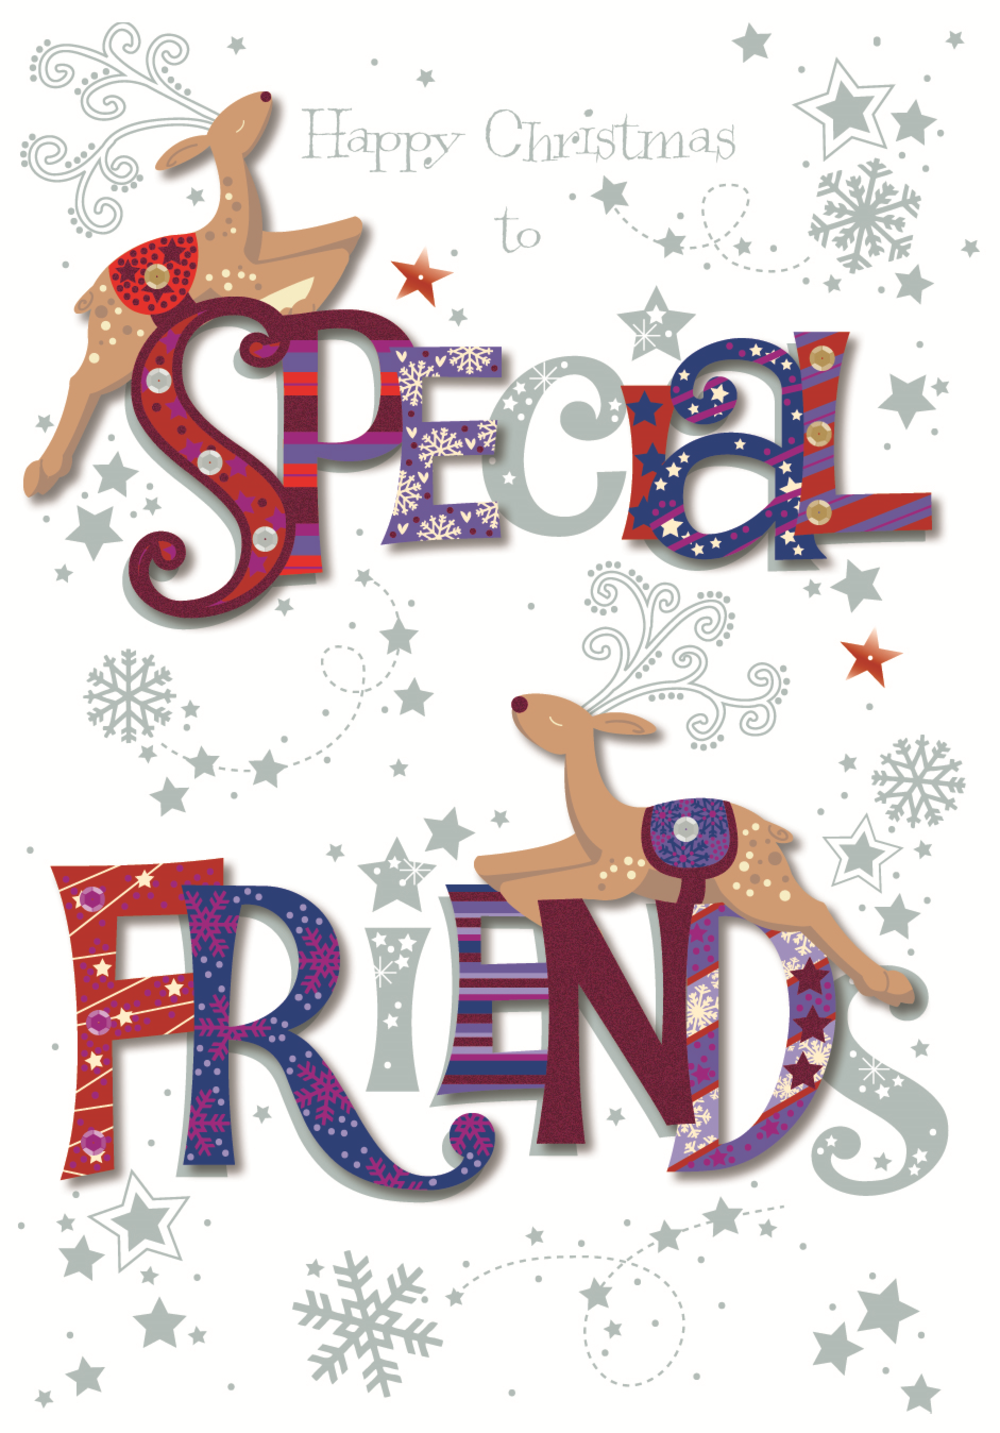 Special Friends Happy Christmas Greeting Card